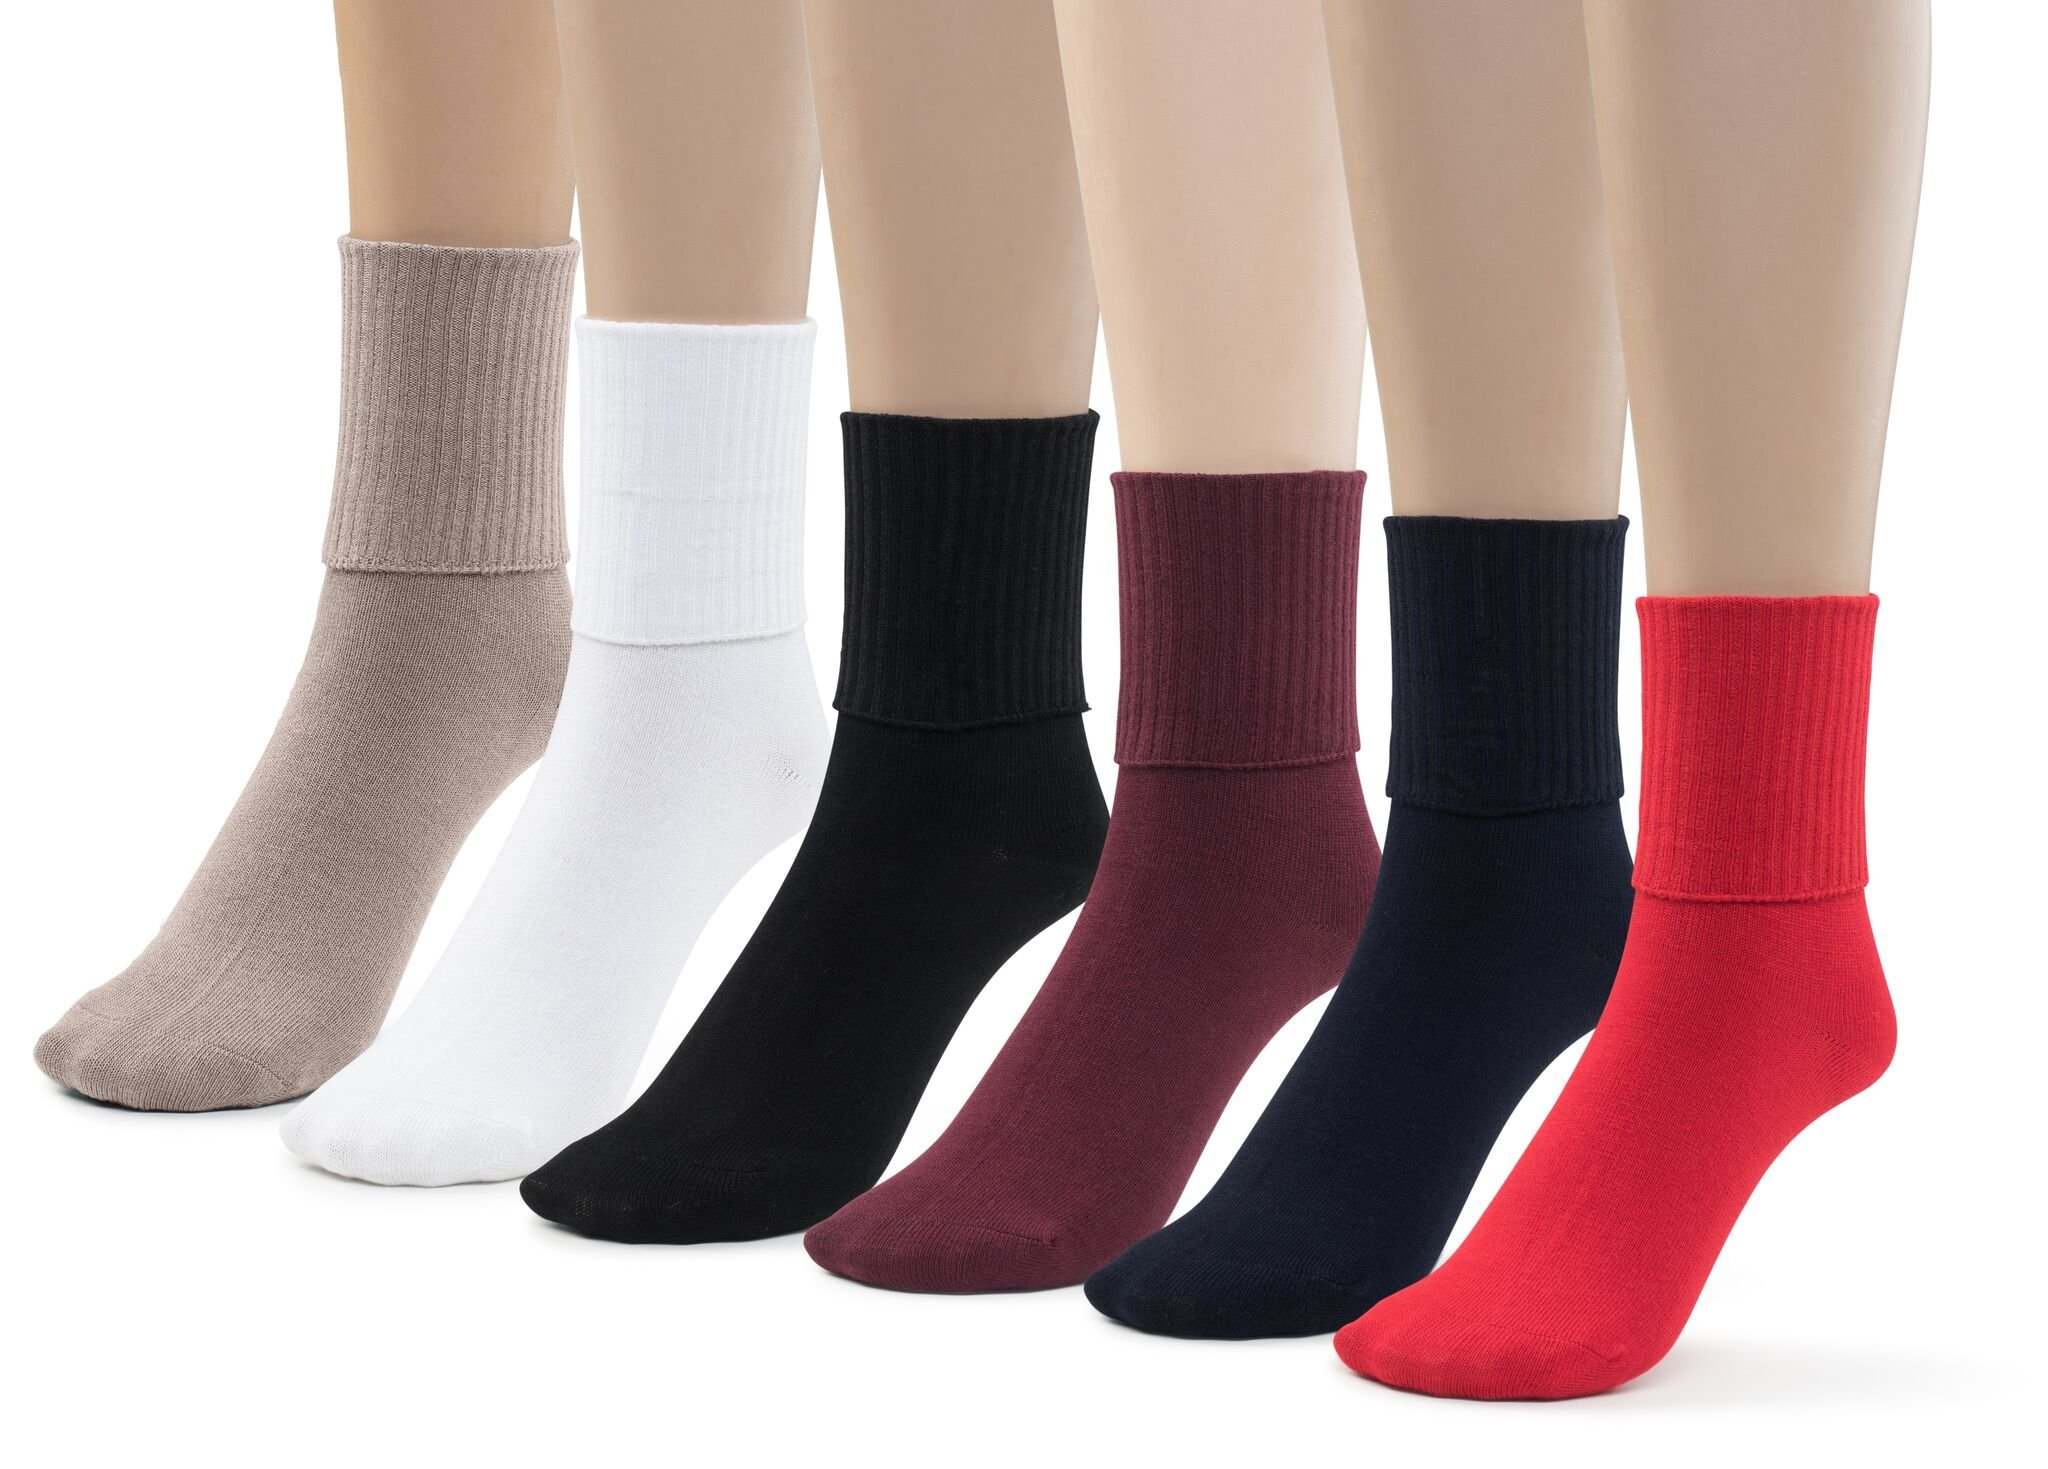 Silky Toes 6 Pk Triple Roll Bamboo School Socks, Turn Cuff Girls Boys Casual Crew Socks (Small (7-8), Assorted (6 Pack)) by Silky Toes (Image #1)